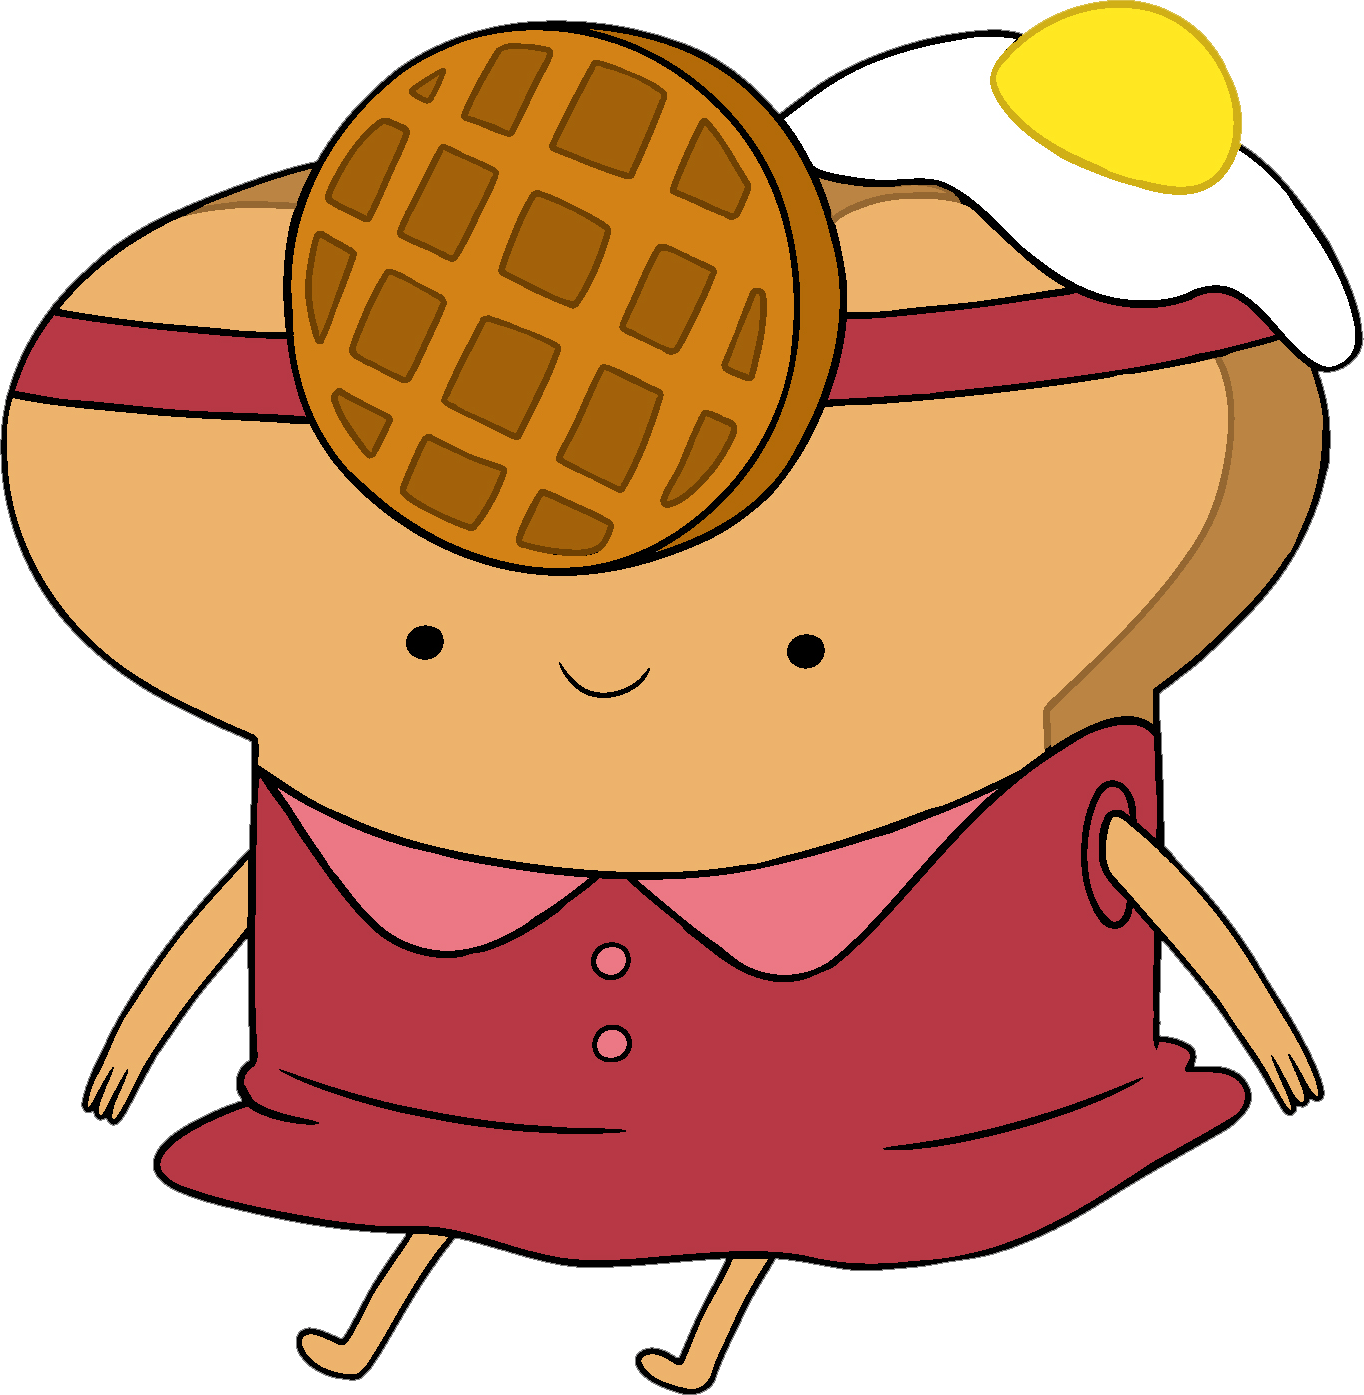 Breakfast Person Mascot